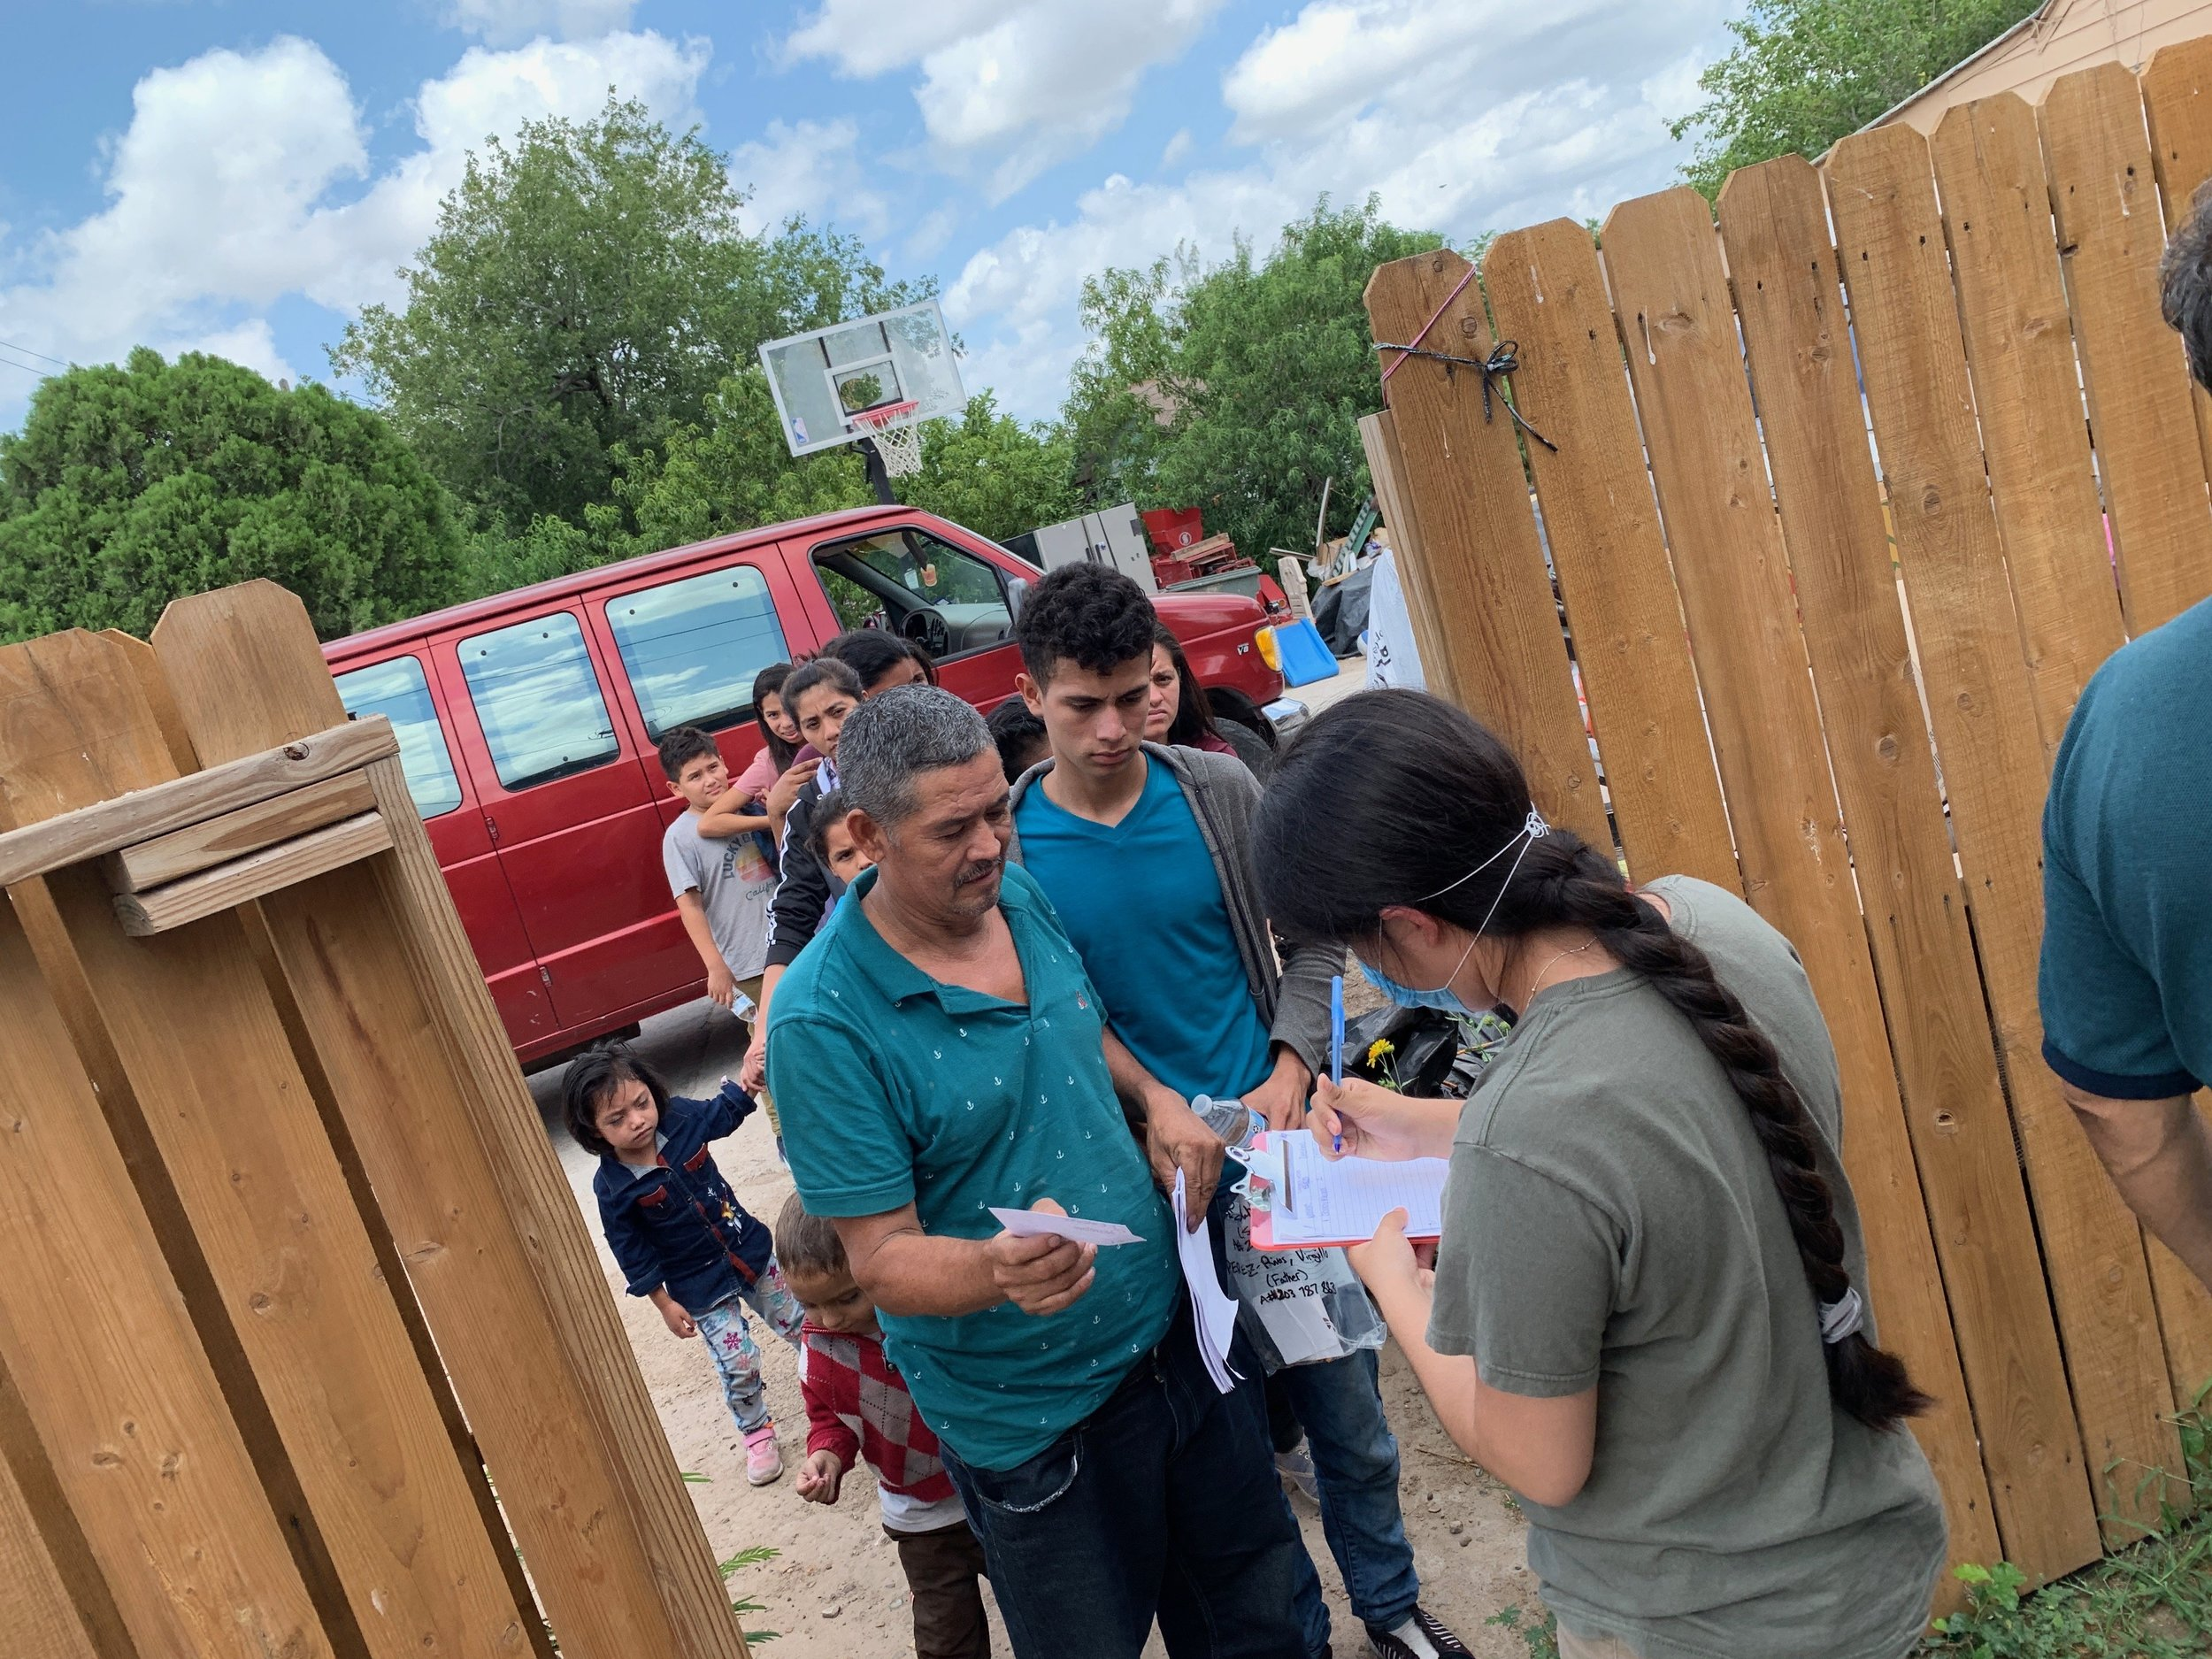 Refugees forming a line to show their documents given by ICE in order to call their relatives for a bus or plane ticket.